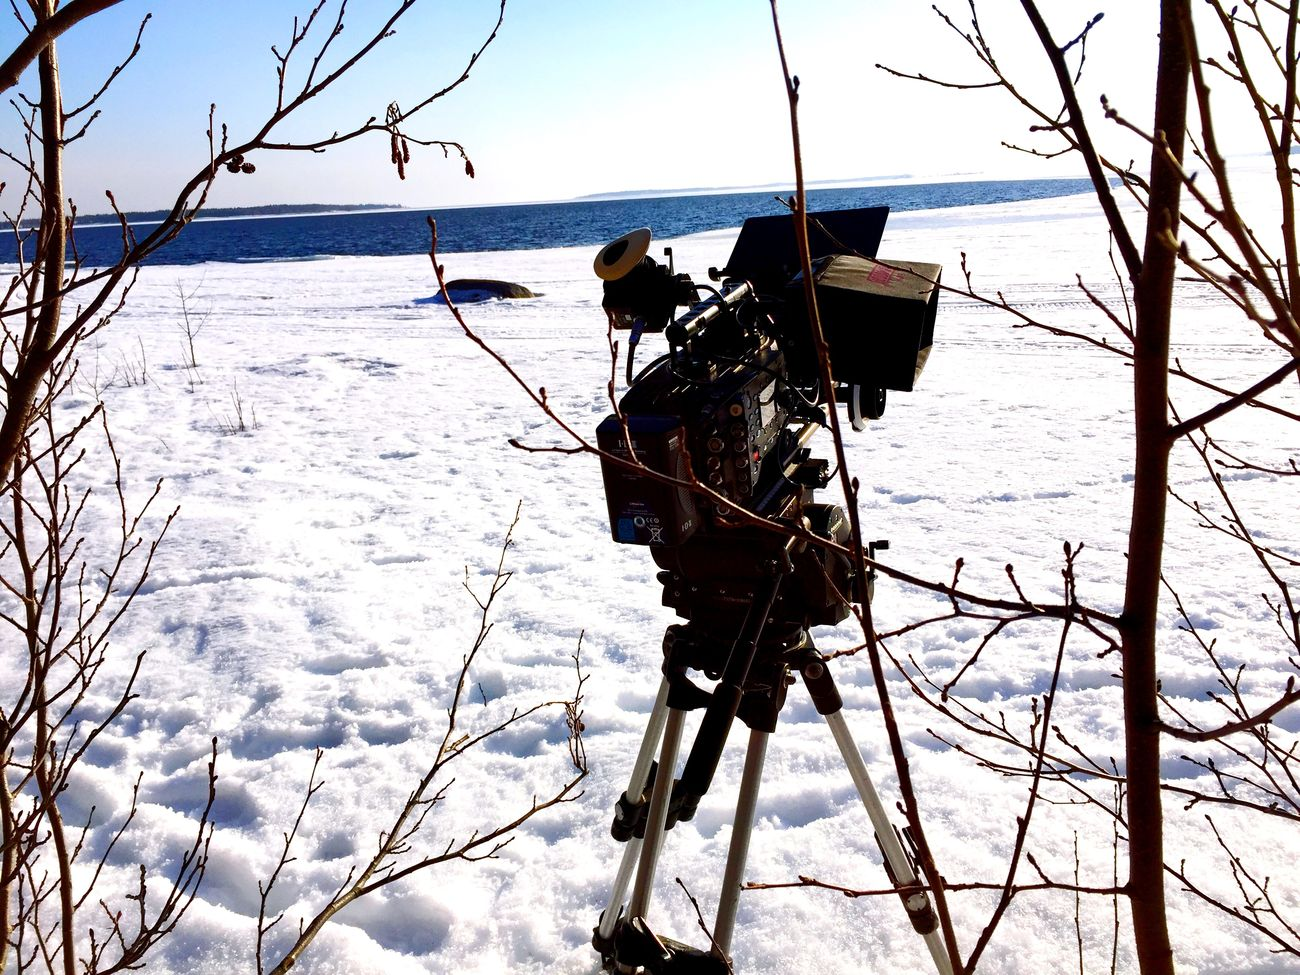 Film Gear Arri Alexa Plus Snow ❄ Focus Puller Setlife Luleå  1-AC Love ARRI